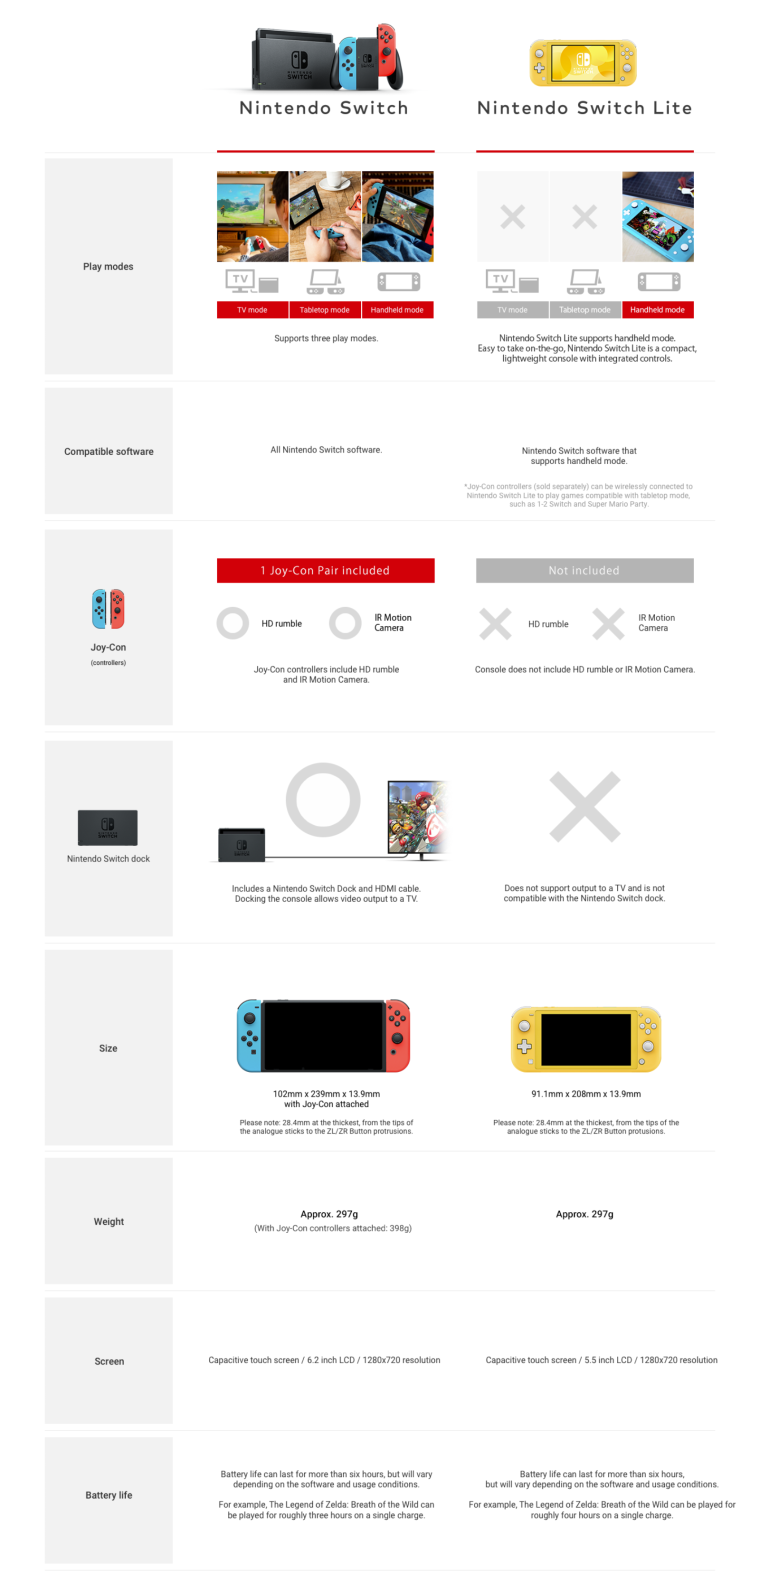 CI_NintendoSwitch_NintendoSwitchLite_WhichSwitch_enGB_image1600w.png